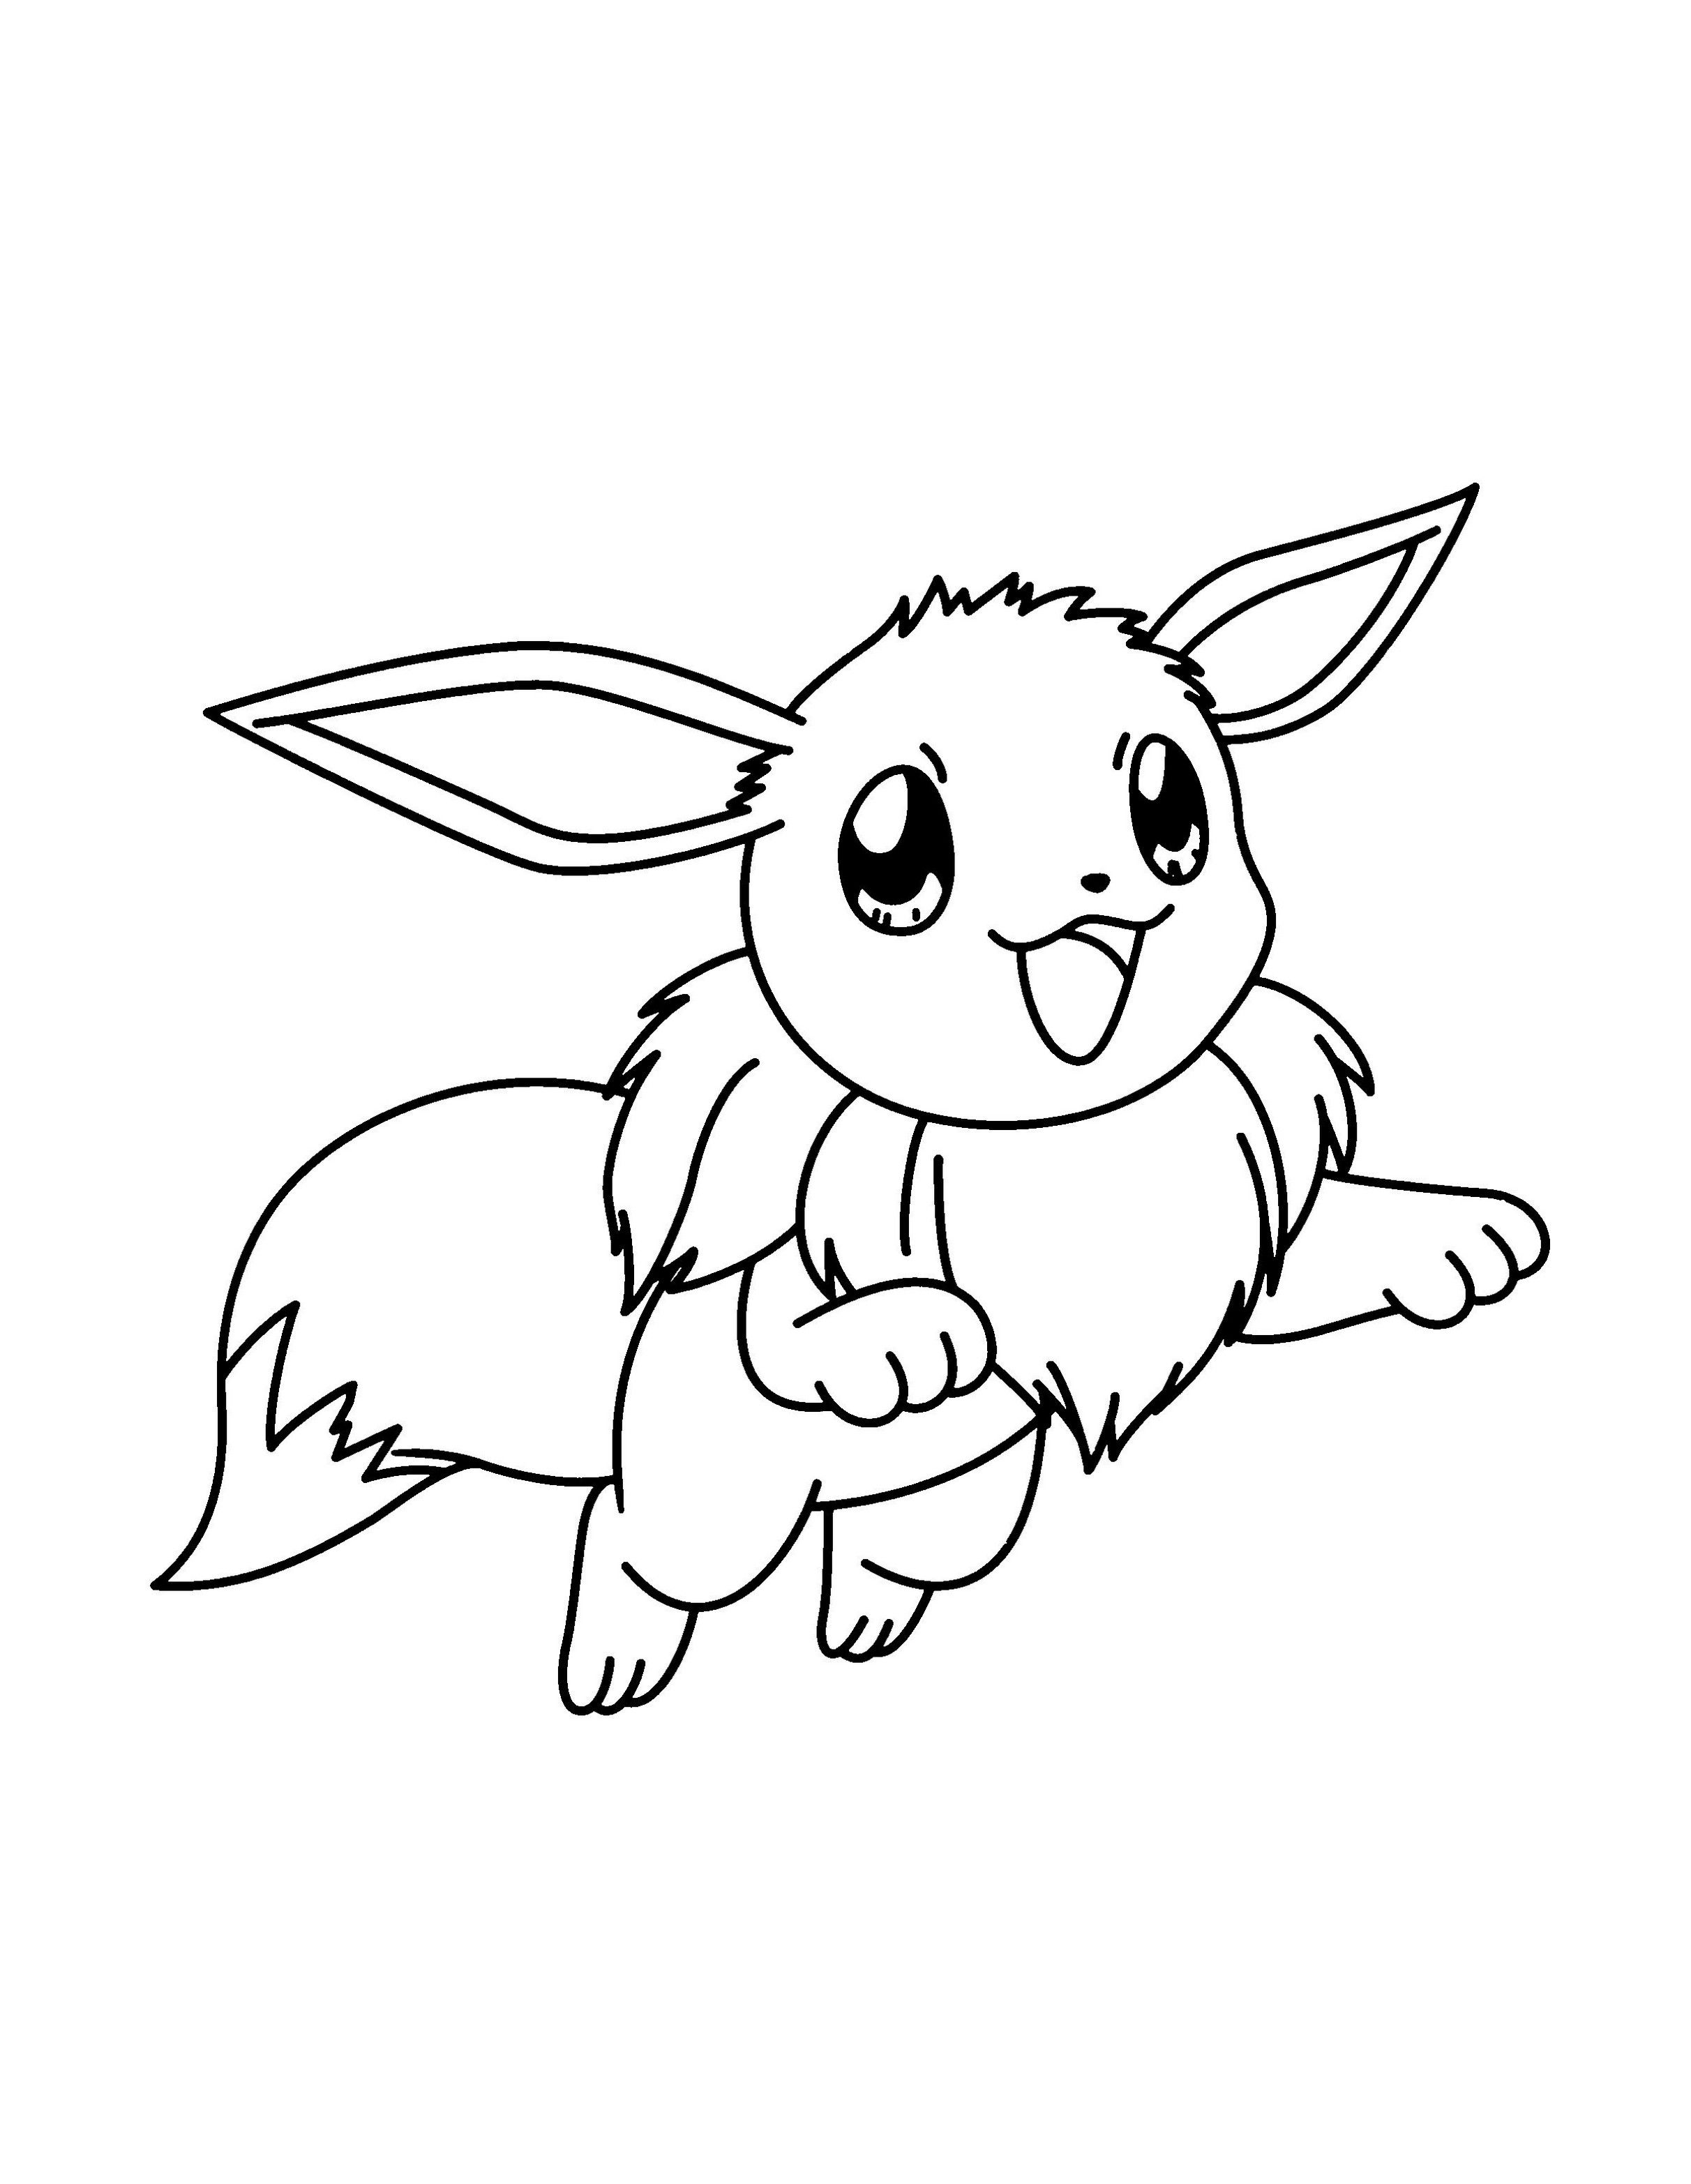 Eevee Coloring Pages Printable Pokemon Coloring Pages Pokemon